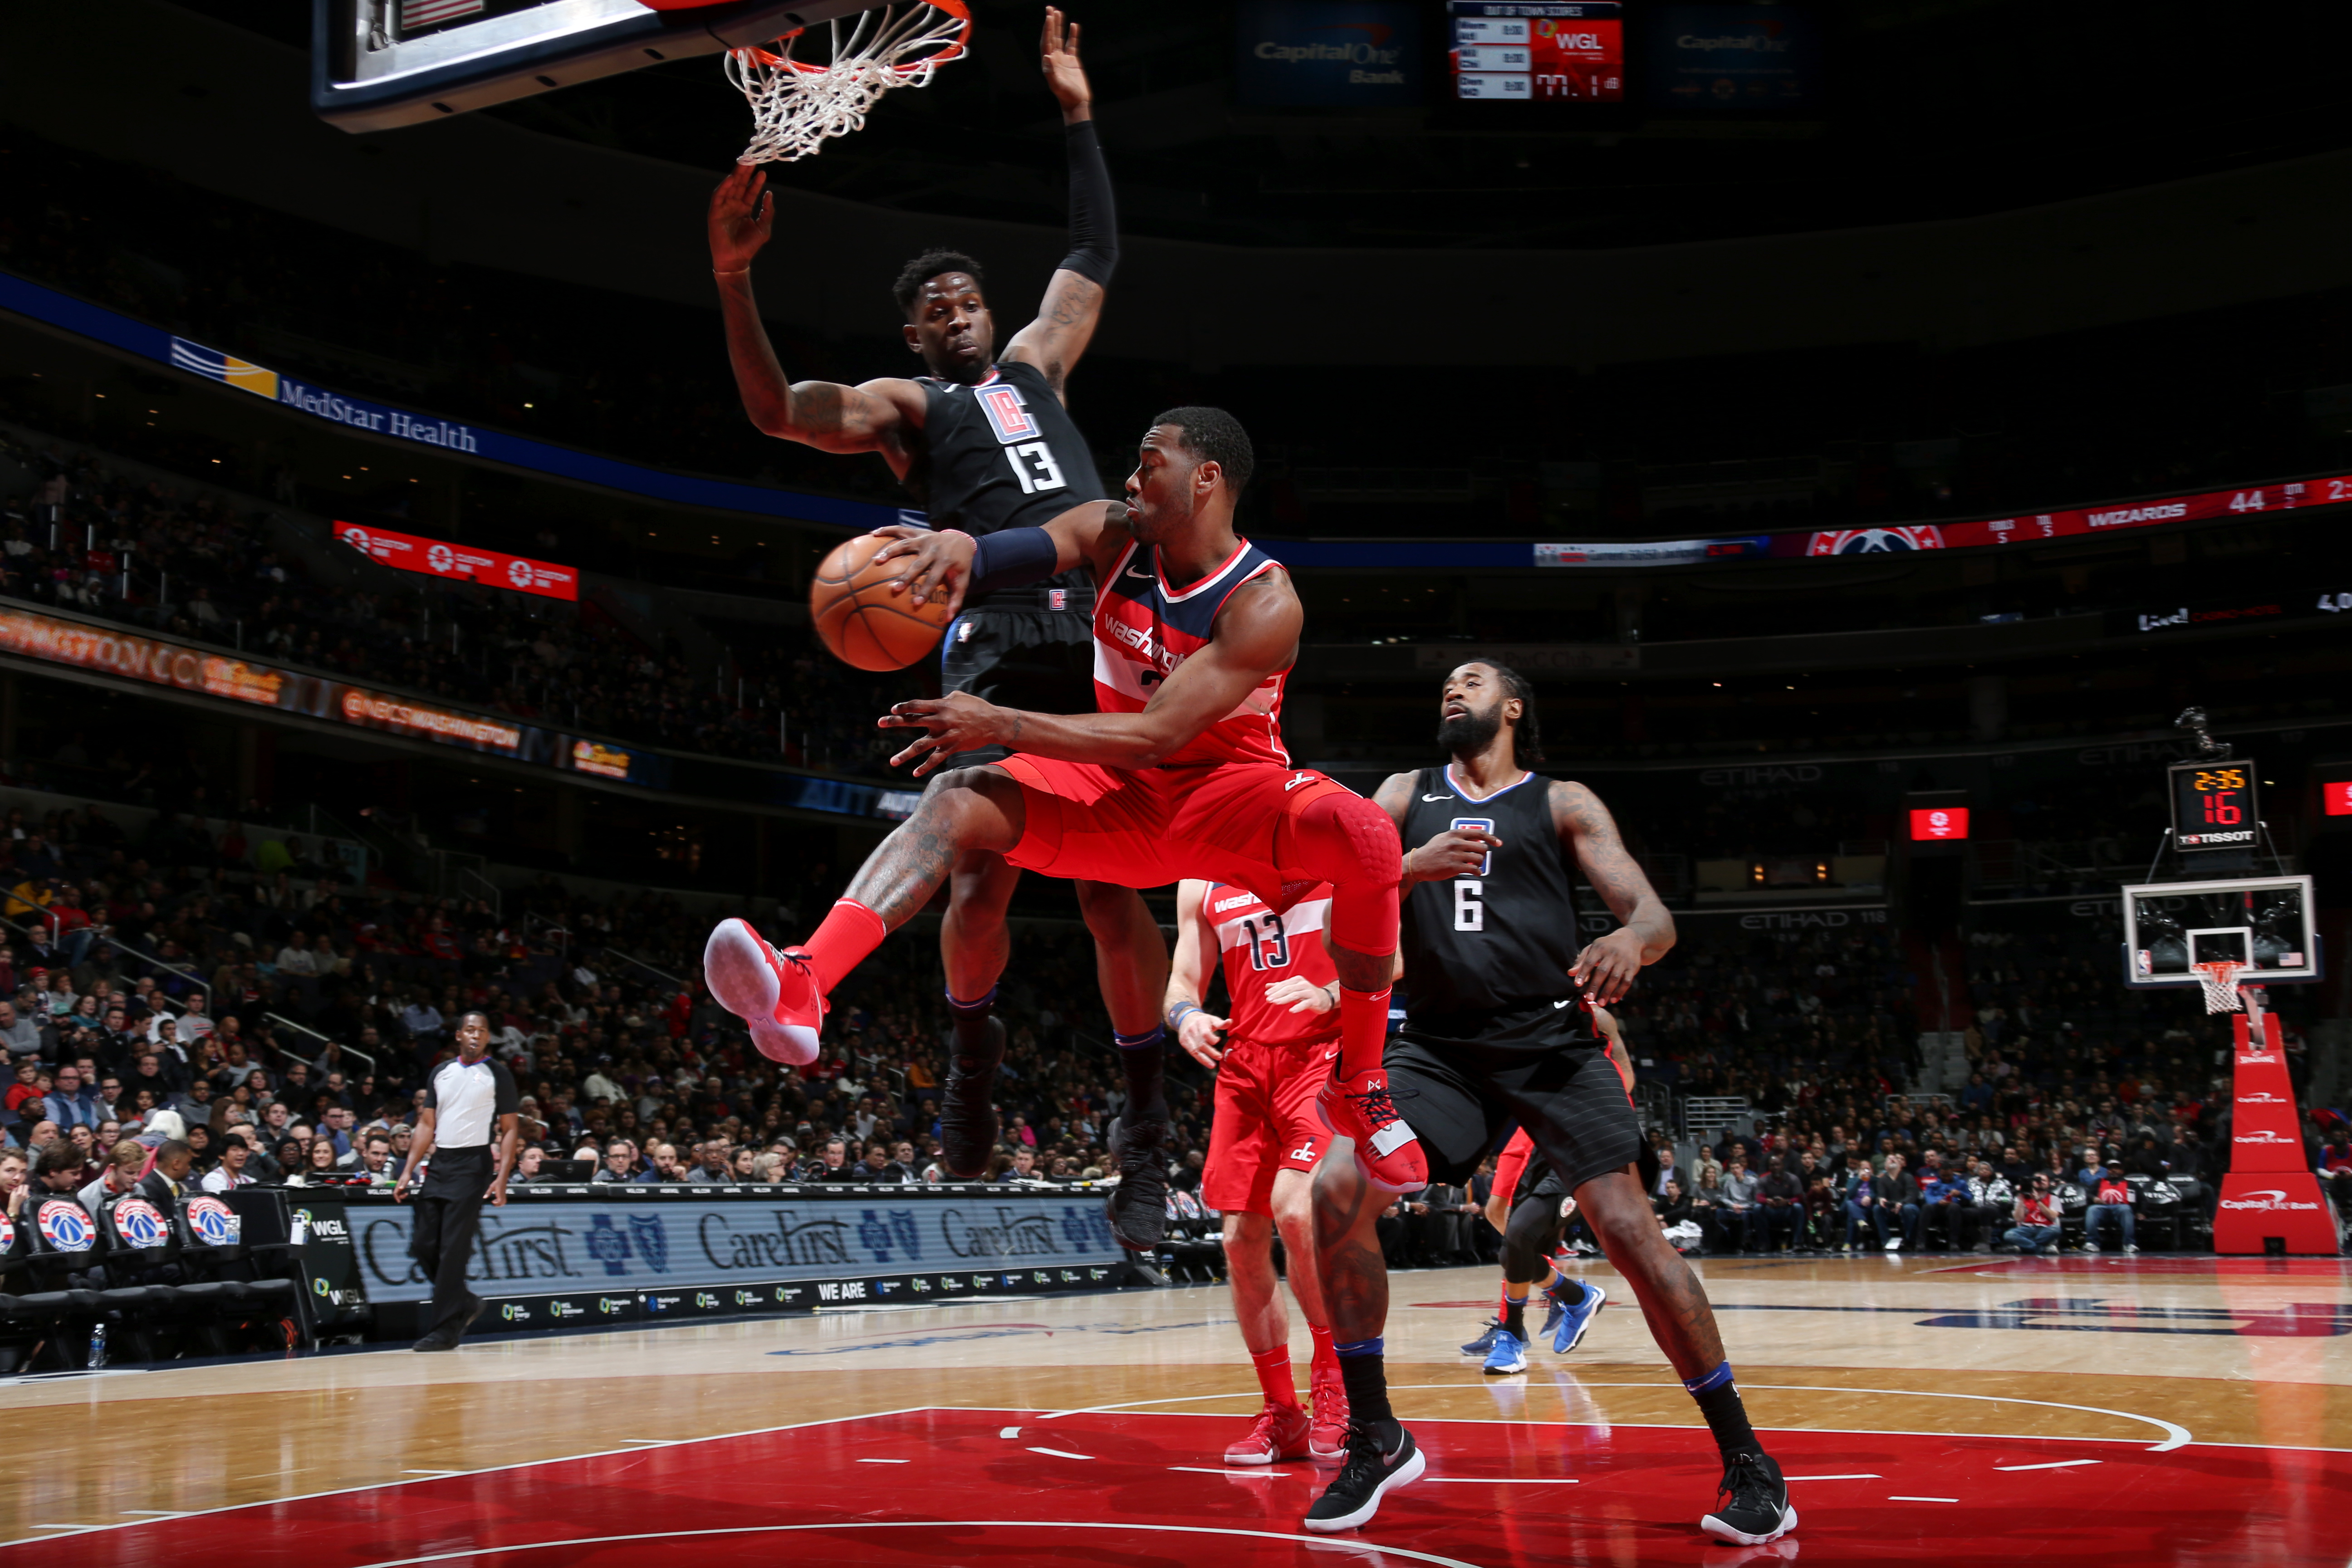 Wizards blow big lead, manage to keep shorthanded Clippers at bay